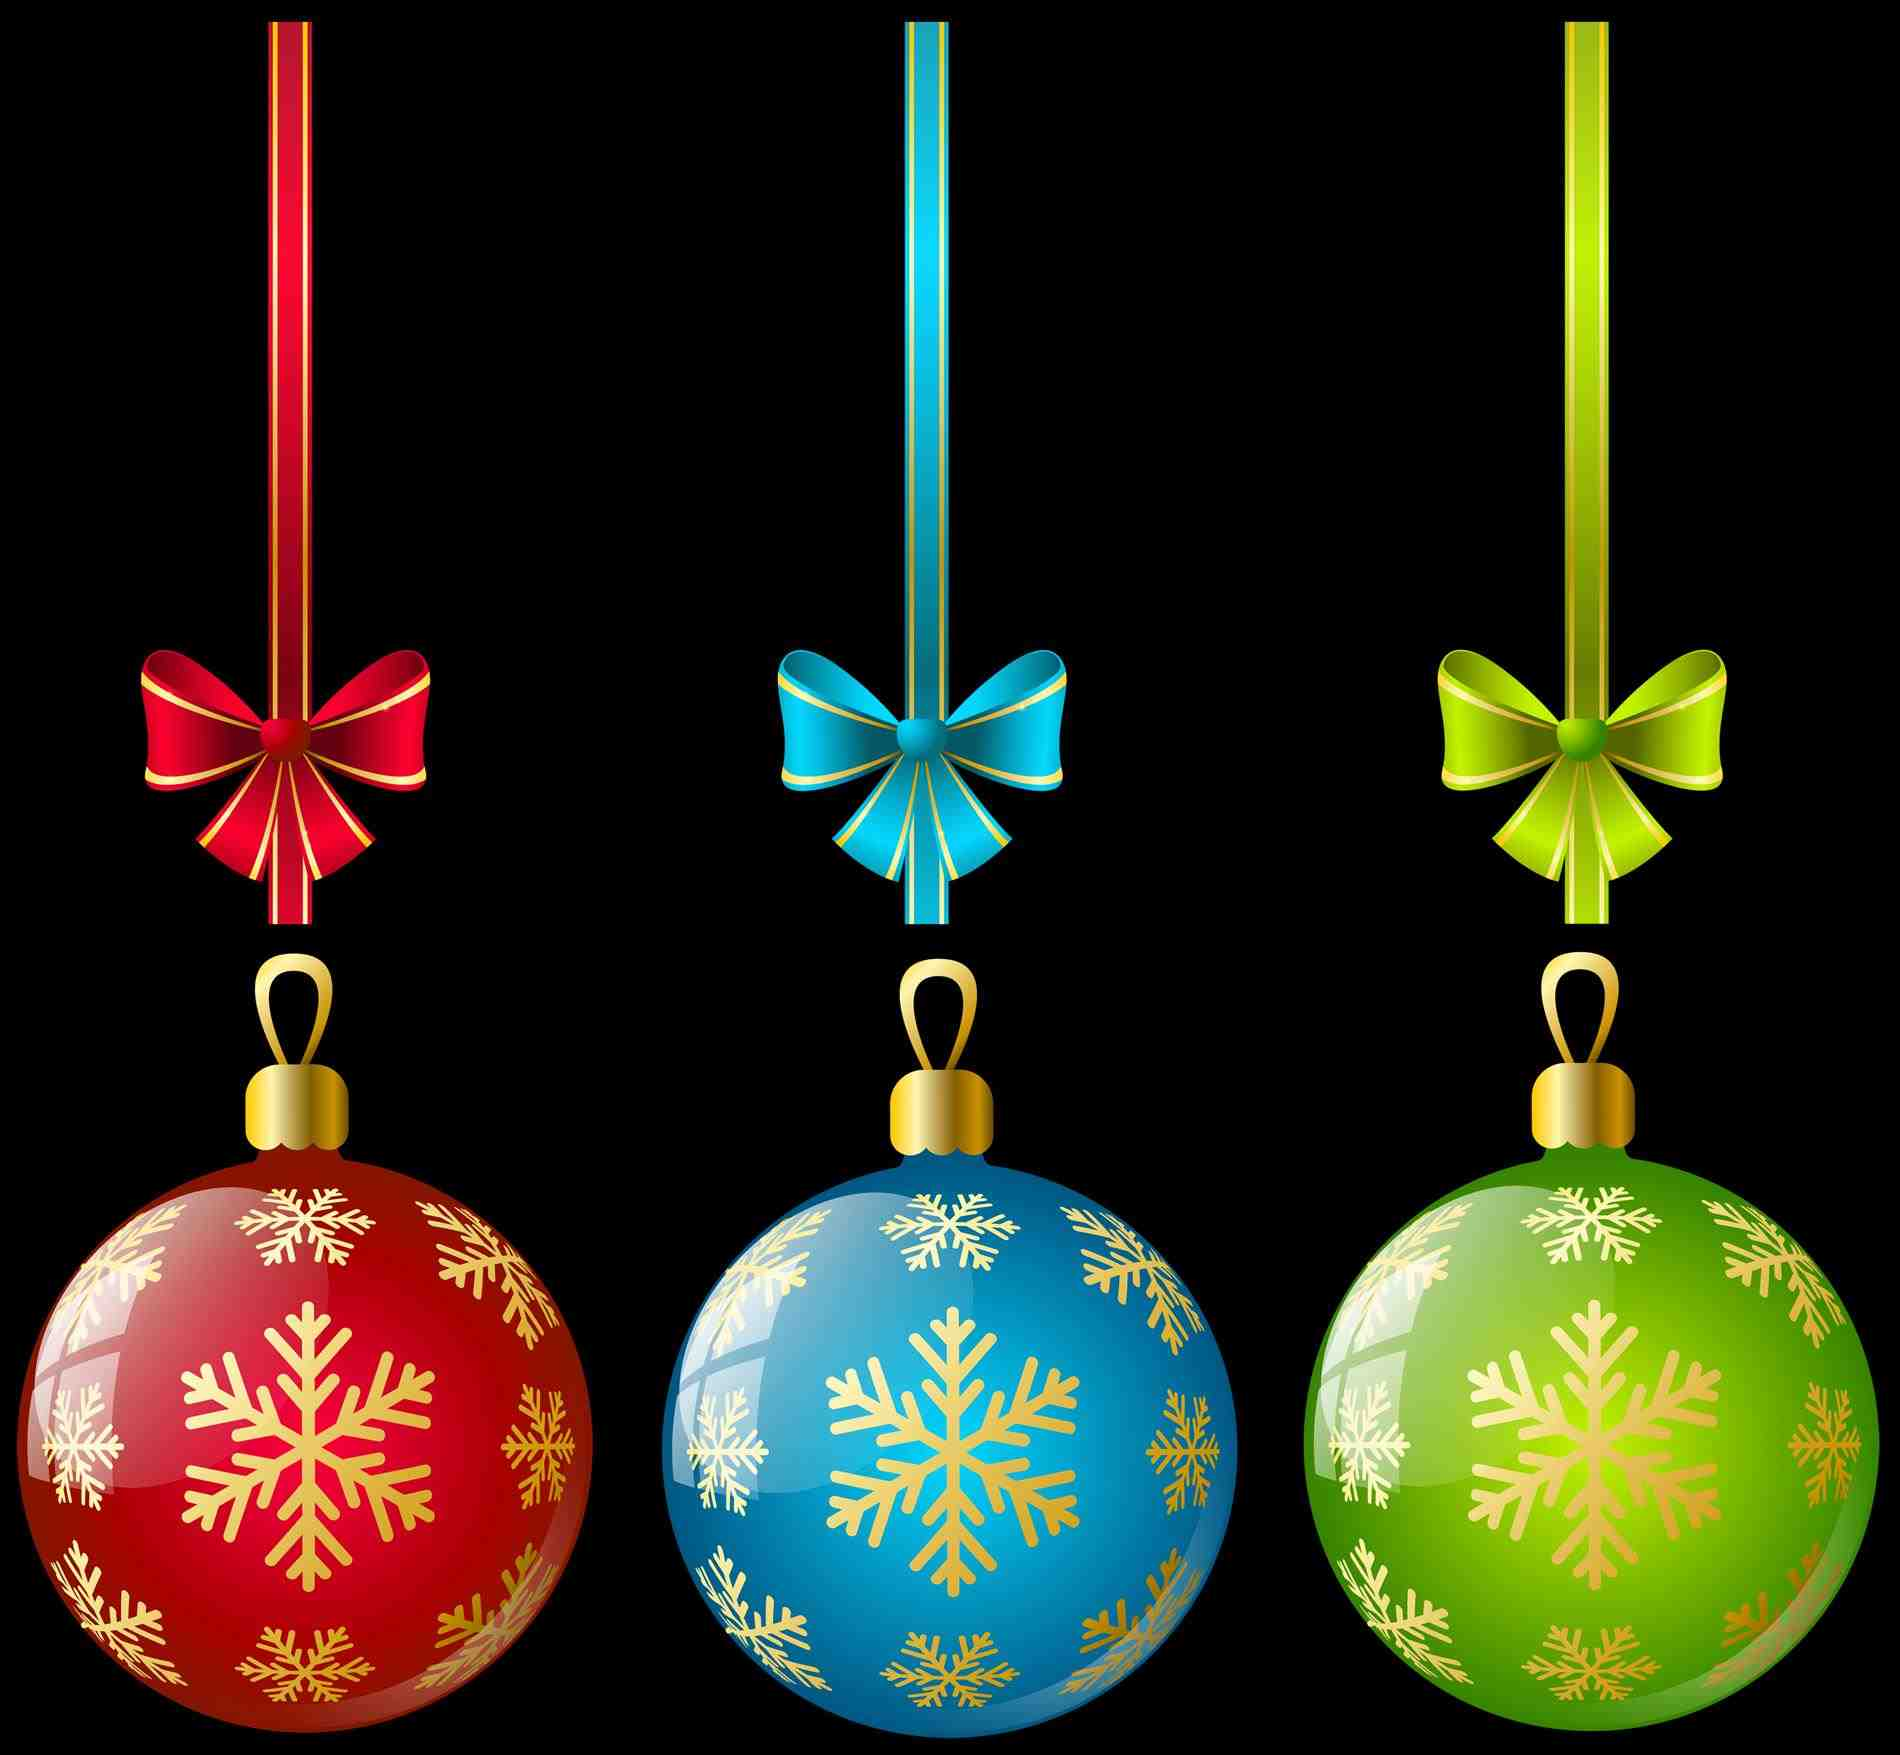 1900x1755 Christmas Ornament Clipart Free Cheminee.website